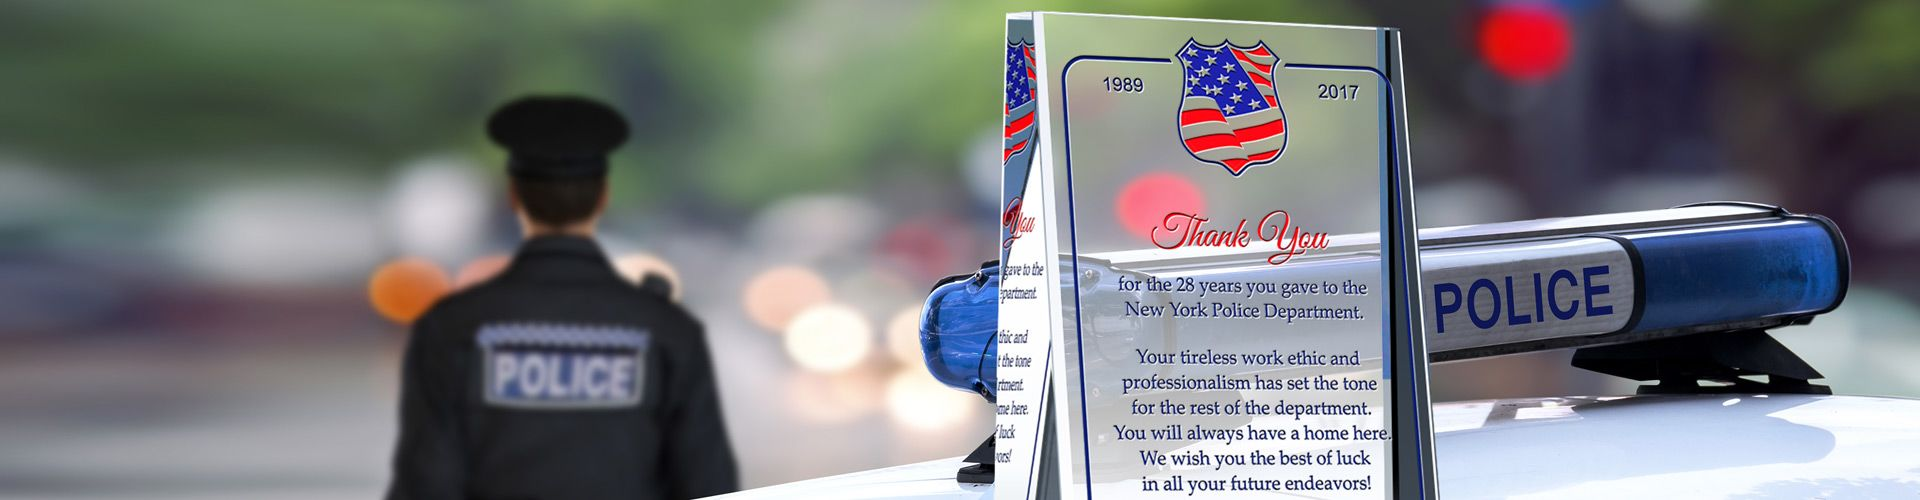 Police Retirement Awards & Personalized Crystal Plaques - Banner 1